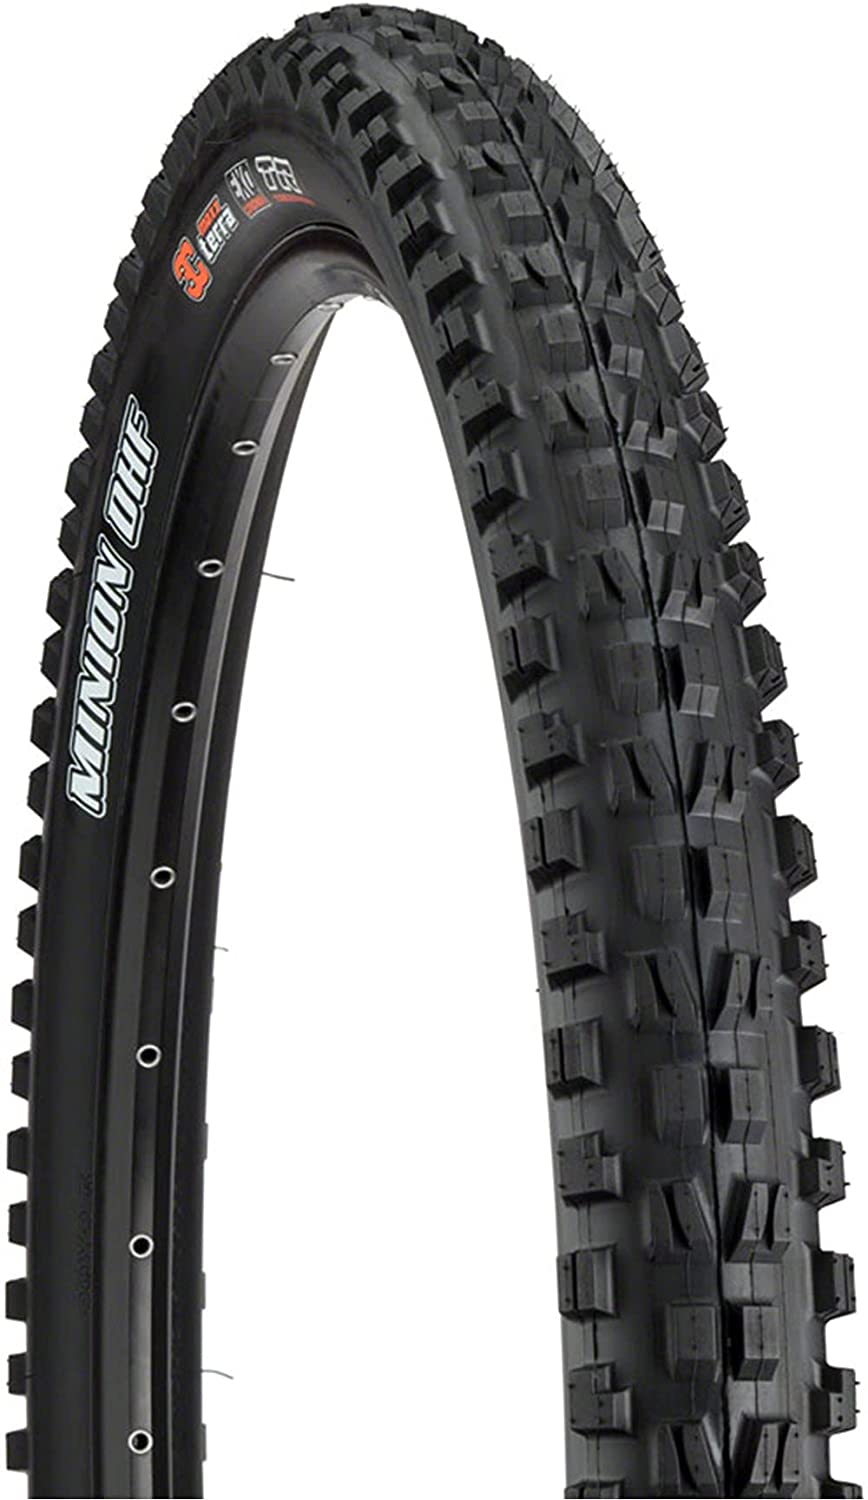 MAXXIS - Minion DHF 3C MaxxTerra Tubeless Ready Folding MTB Tire | Great Traction, Fast Rolling, Long Lasting | EXO Puncture Protection, 27.5, 29 inch Sizes